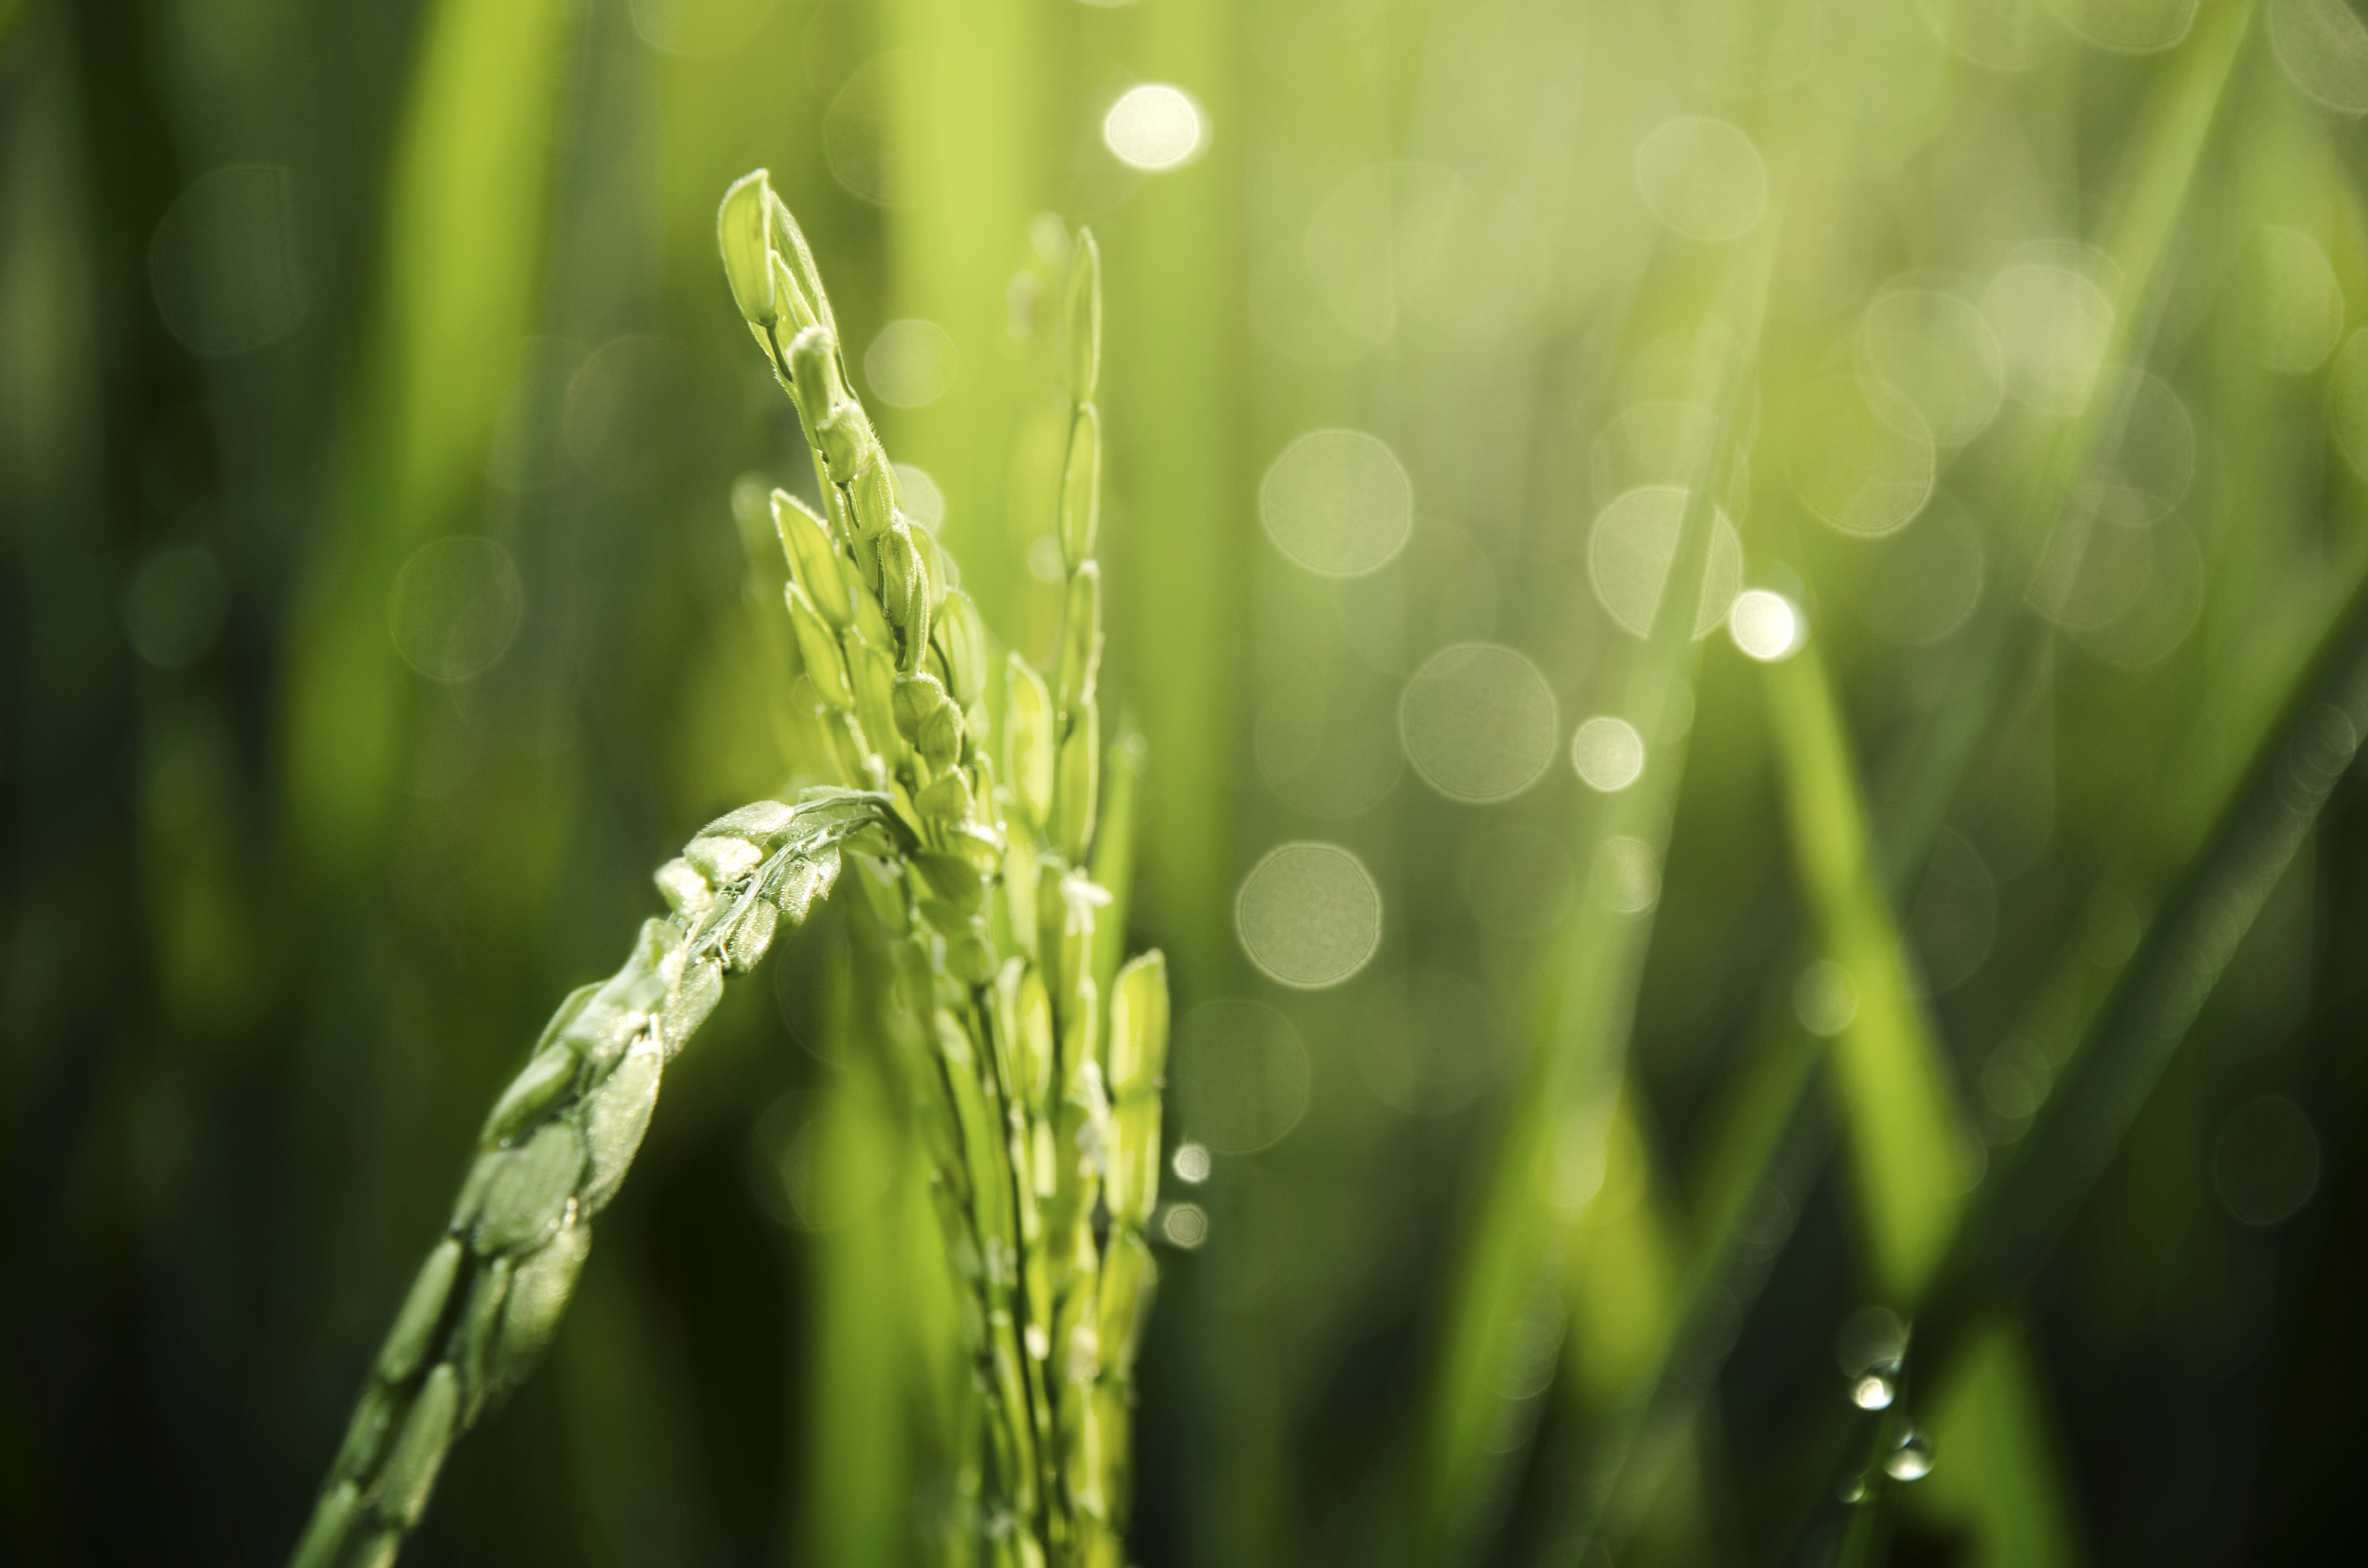 macro photography of rice with bokeh light background